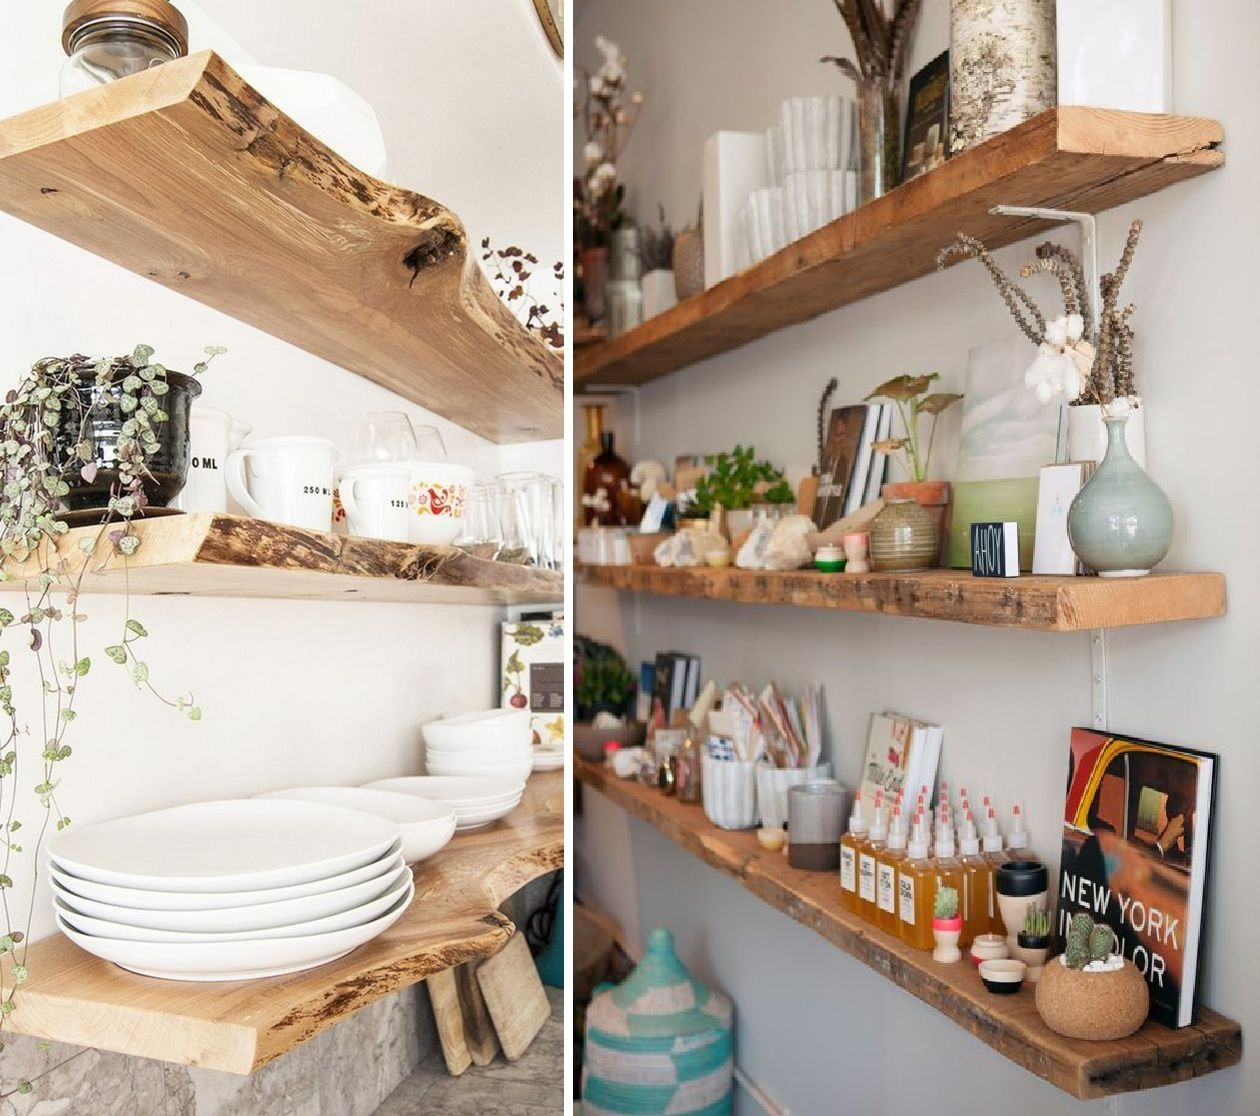 How To Use Reclaimed Wood Floating Shelves Prettify Your Home